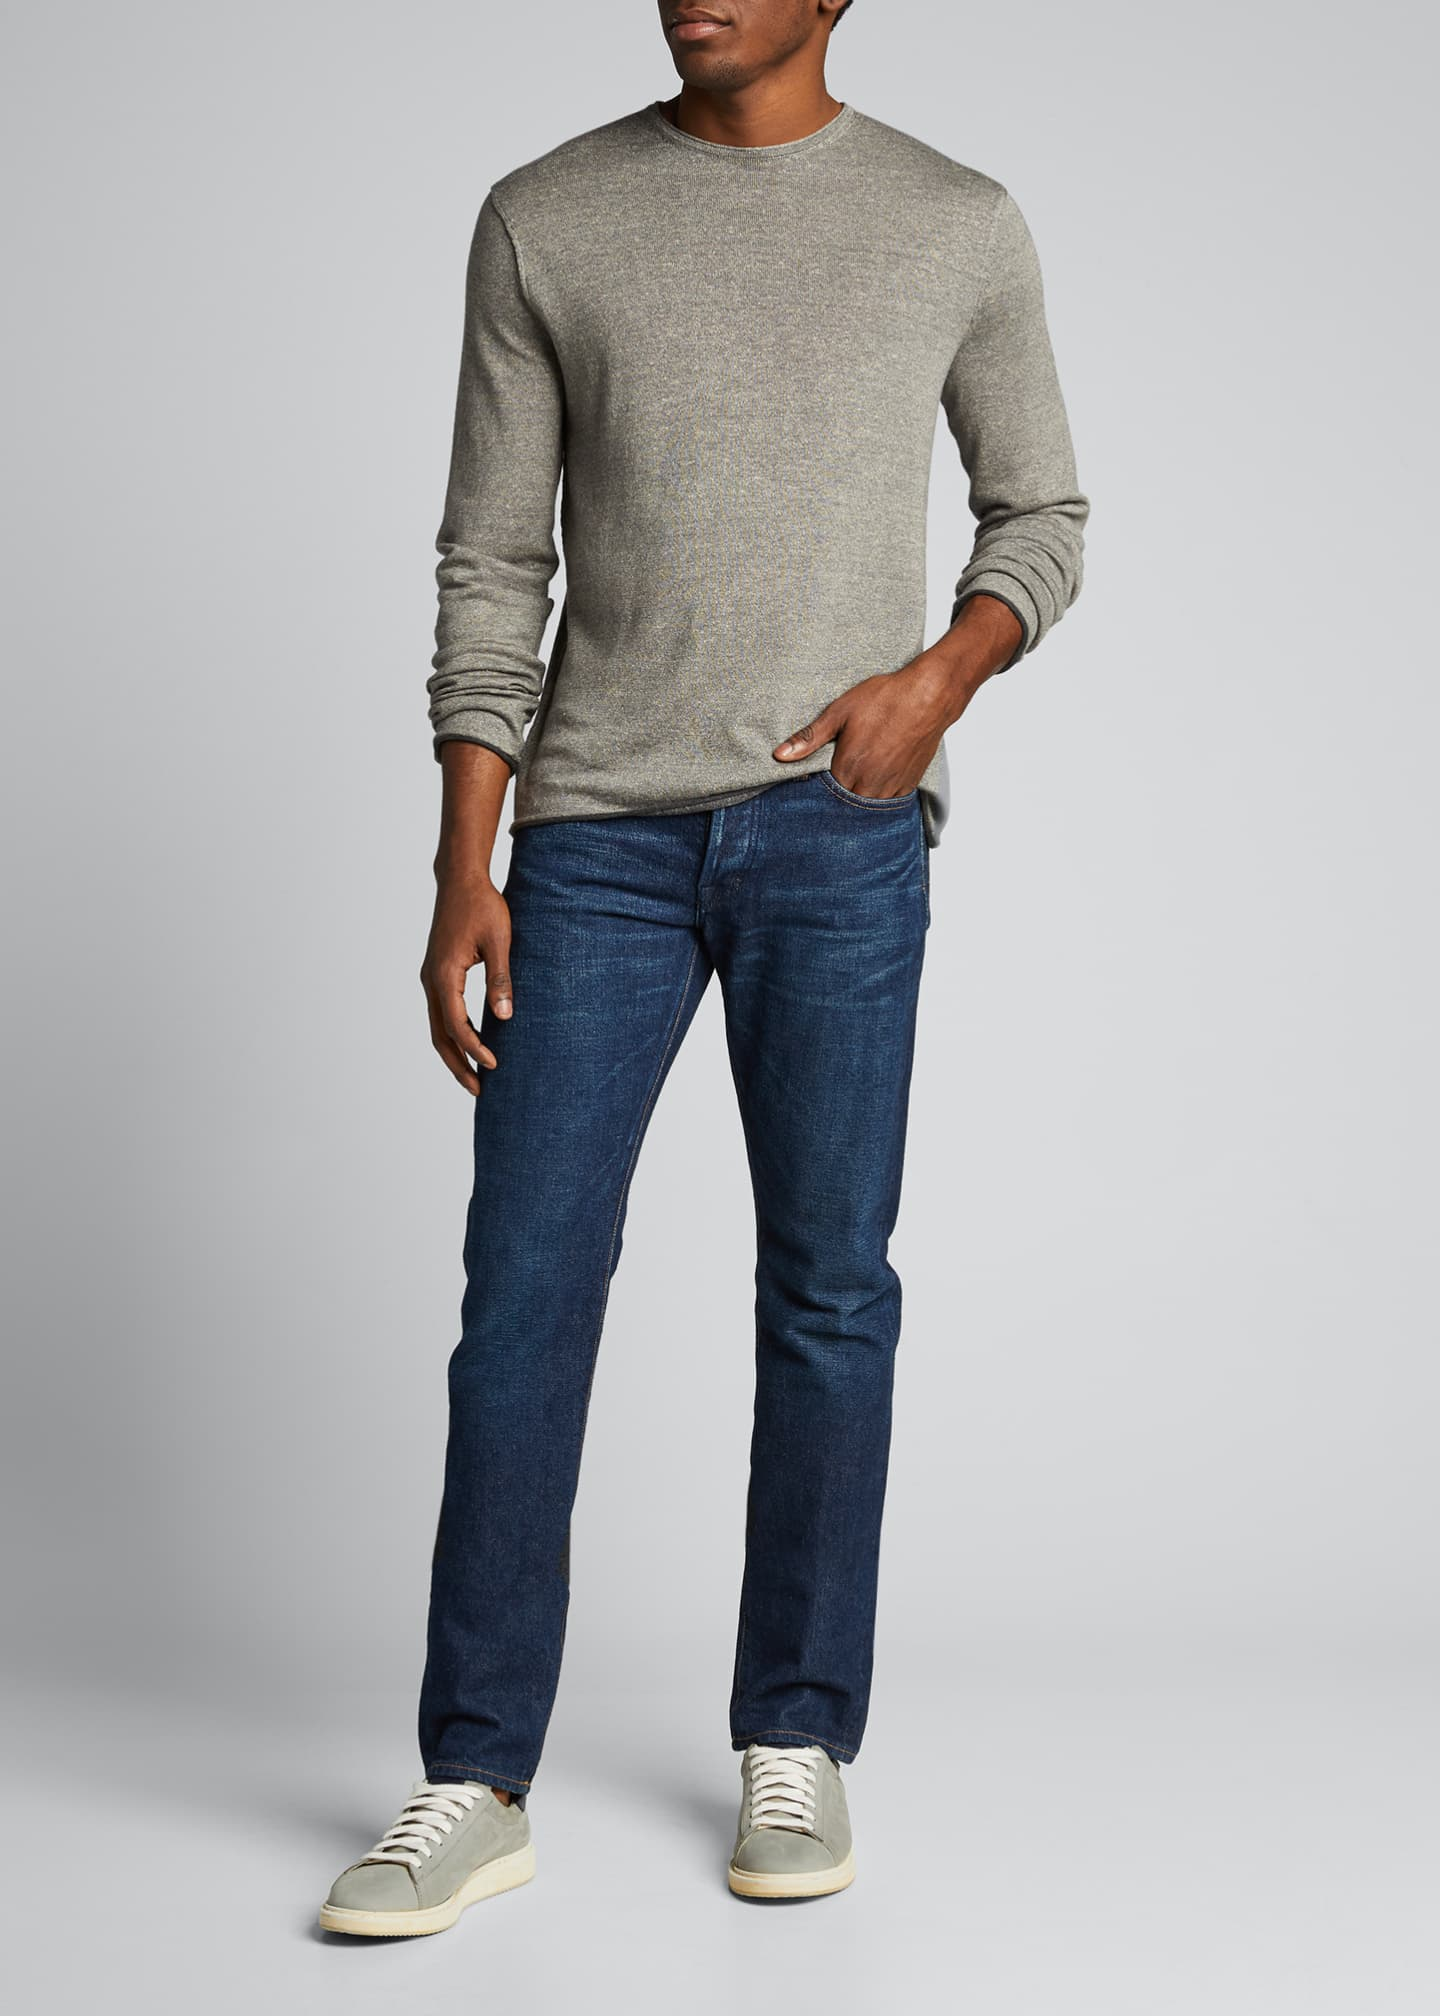 Image 1 of 5: Men's Trent Extrafine Crewneck Sweater